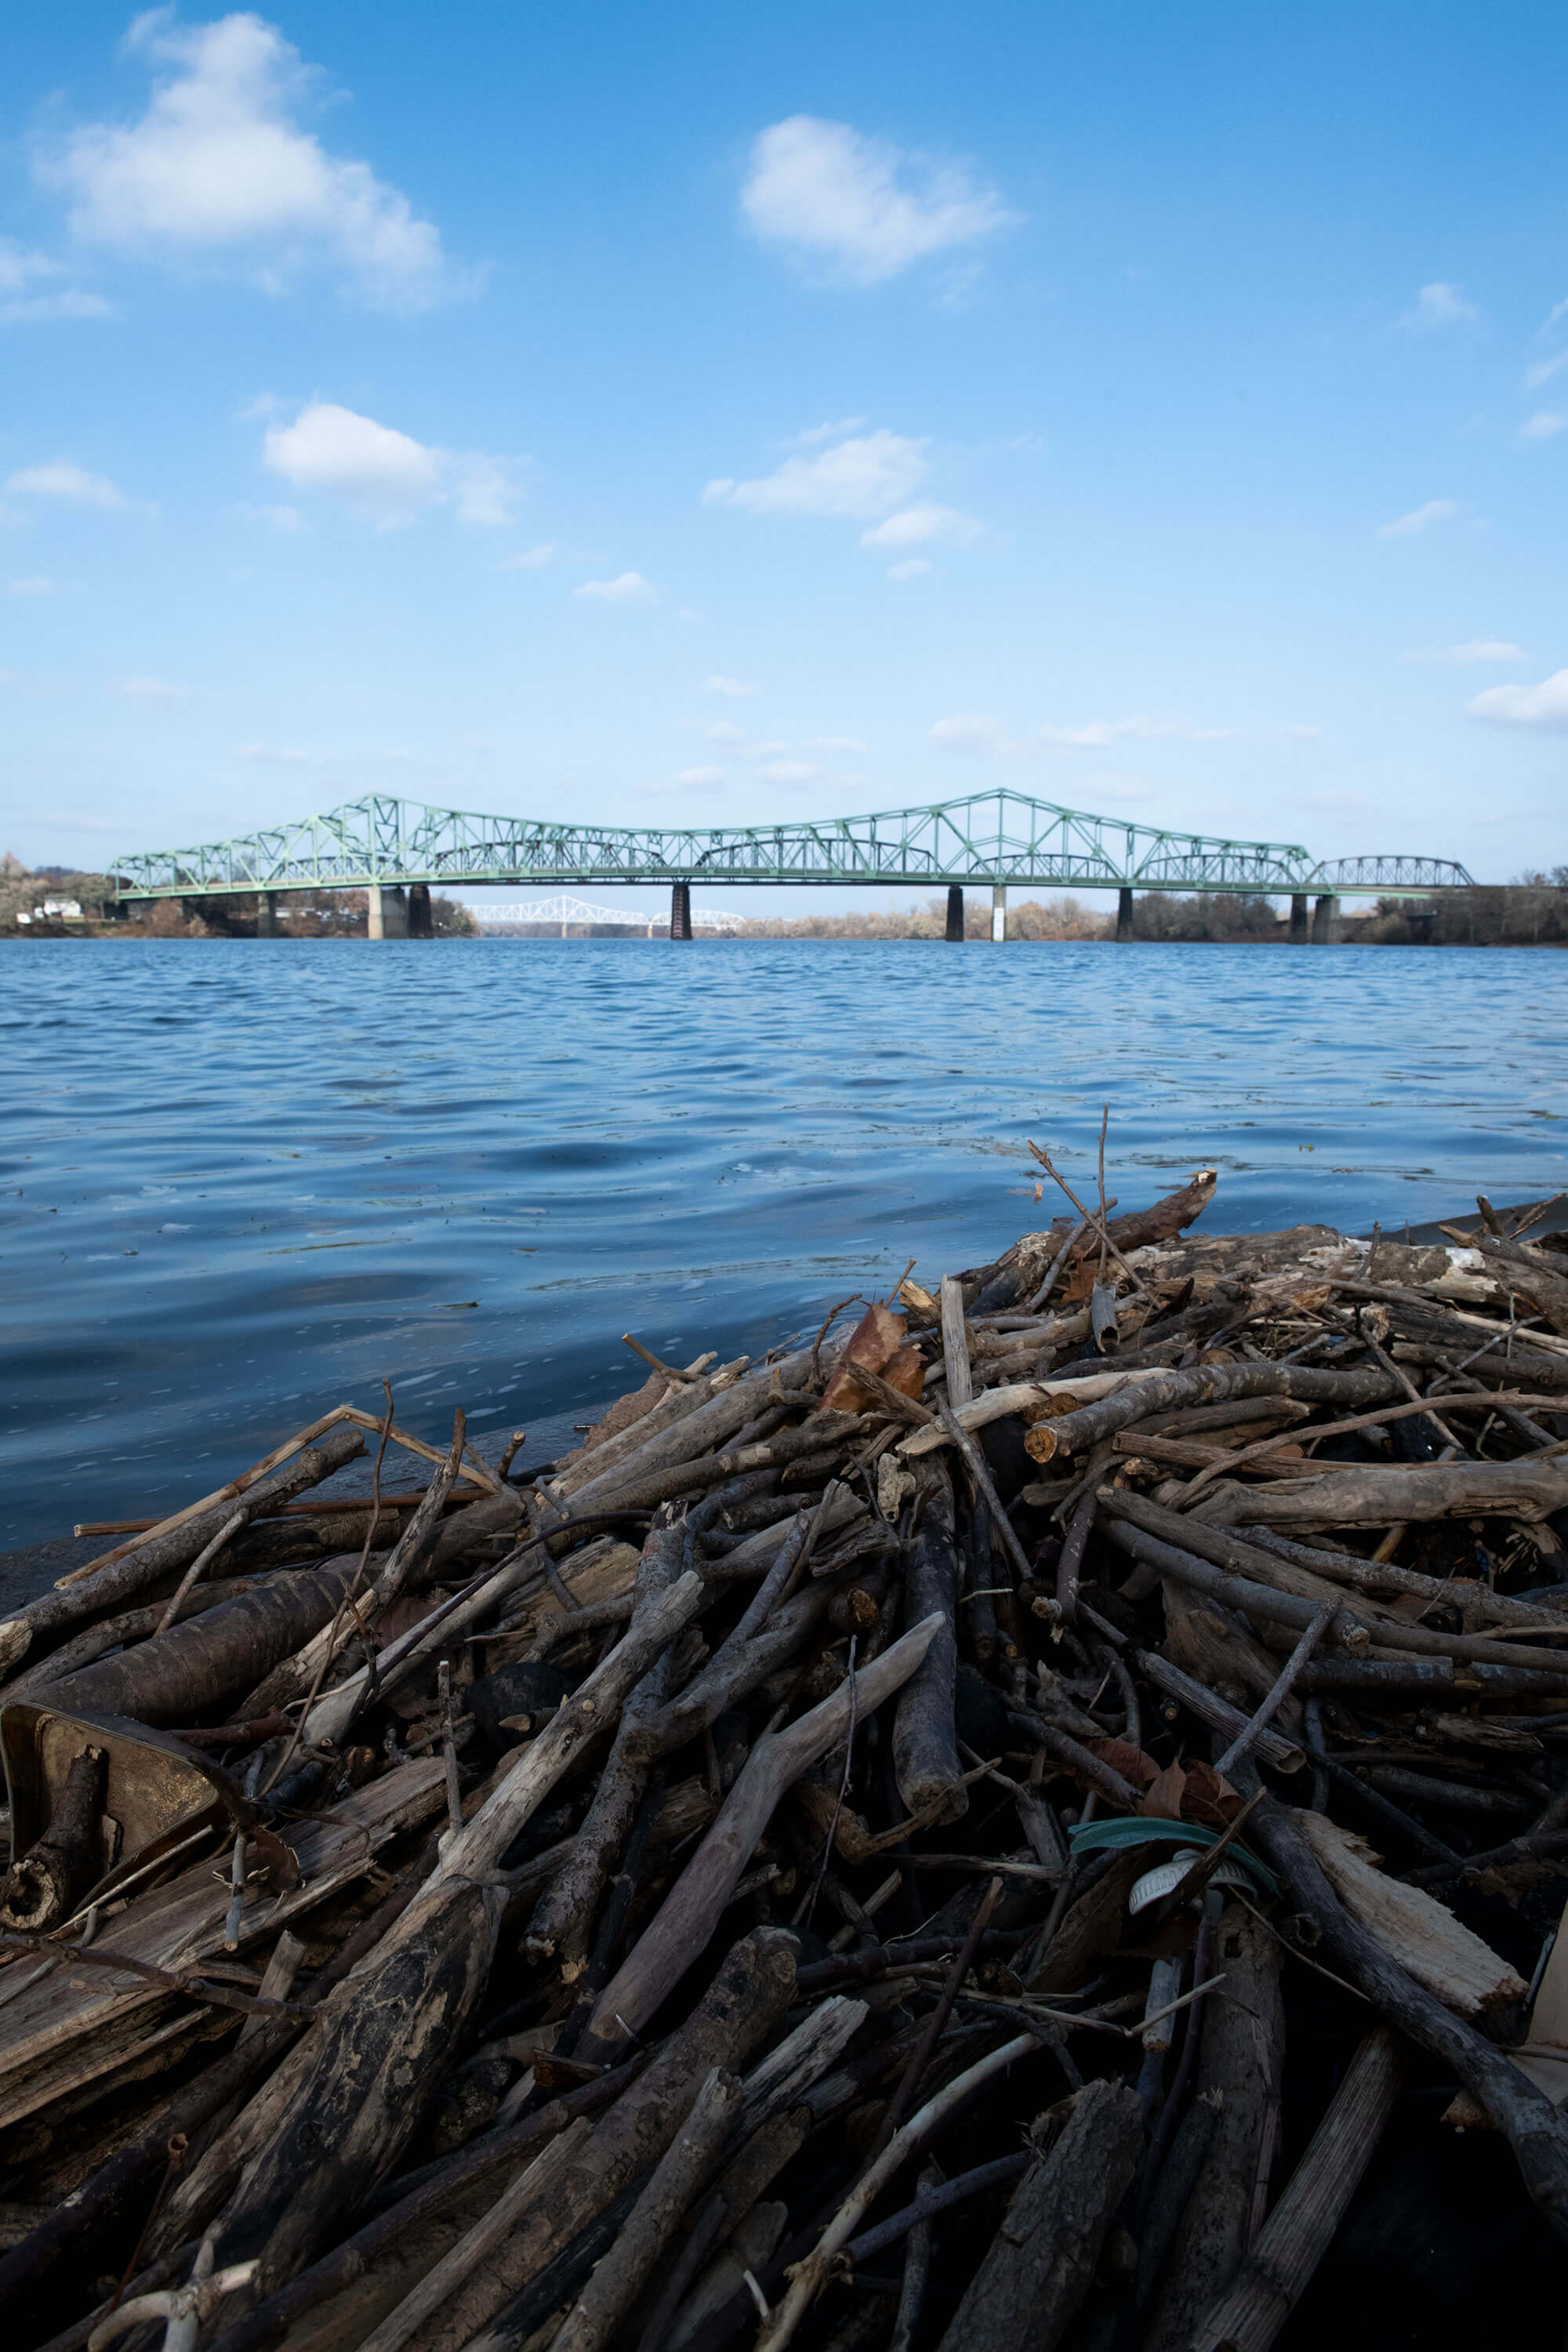 Driftwood is scattered along the shoreline at Point Park in Parkersburg, West Virginia, on Nov. 20, 2019. (Photo by Lexi Browning/100 Days in Appalachia)